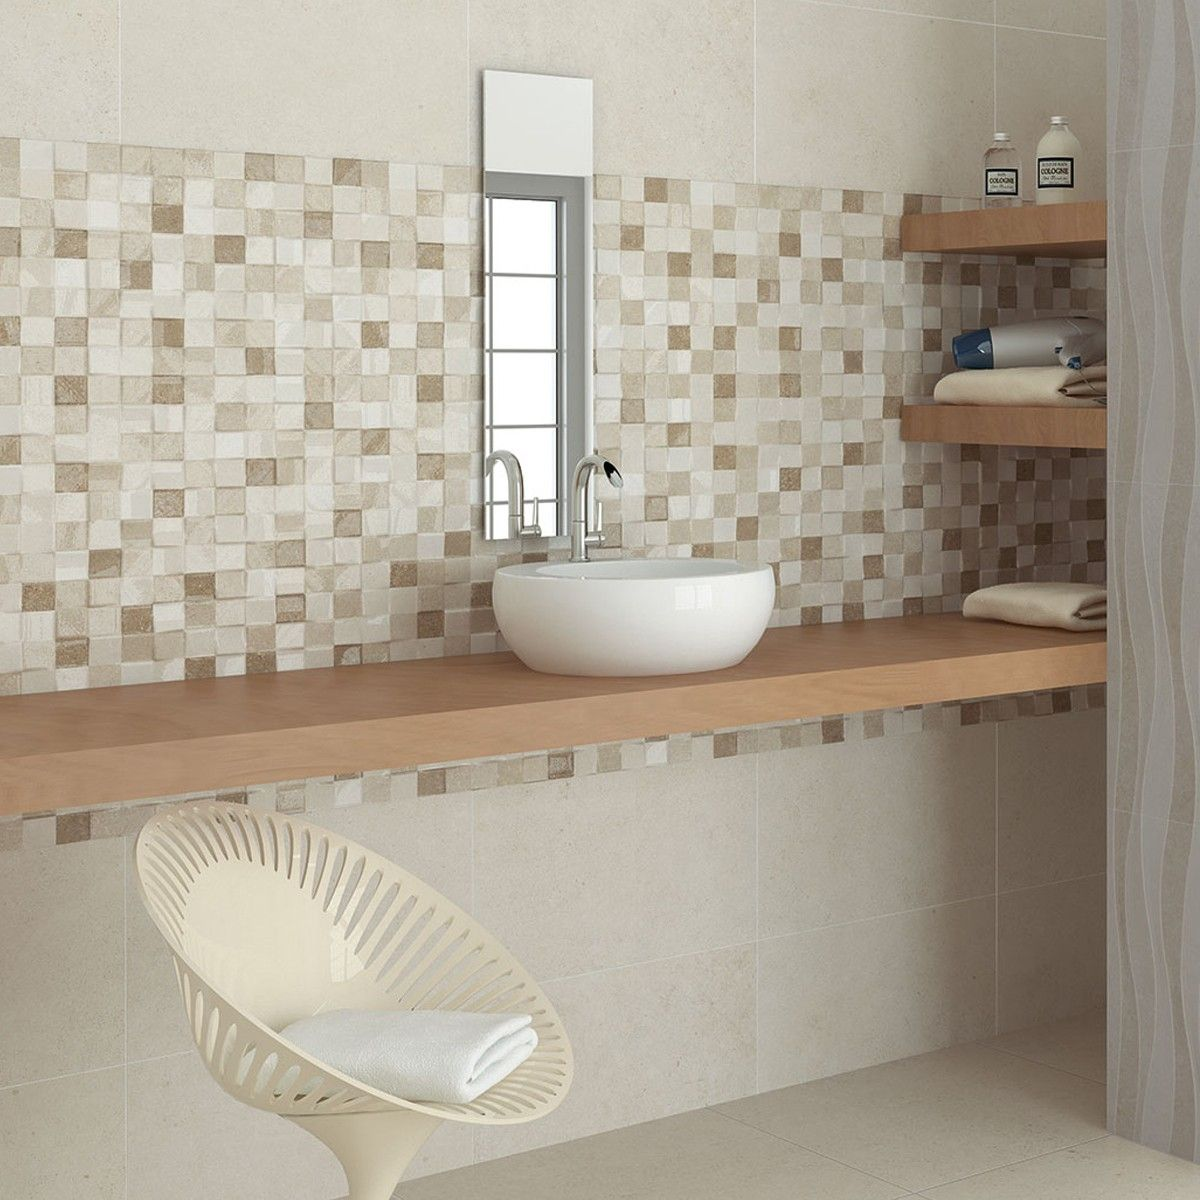 55x33 3 adelaide beige mosaic bathroom wall tiles wall for Bathroom design ideas mosaic tiles